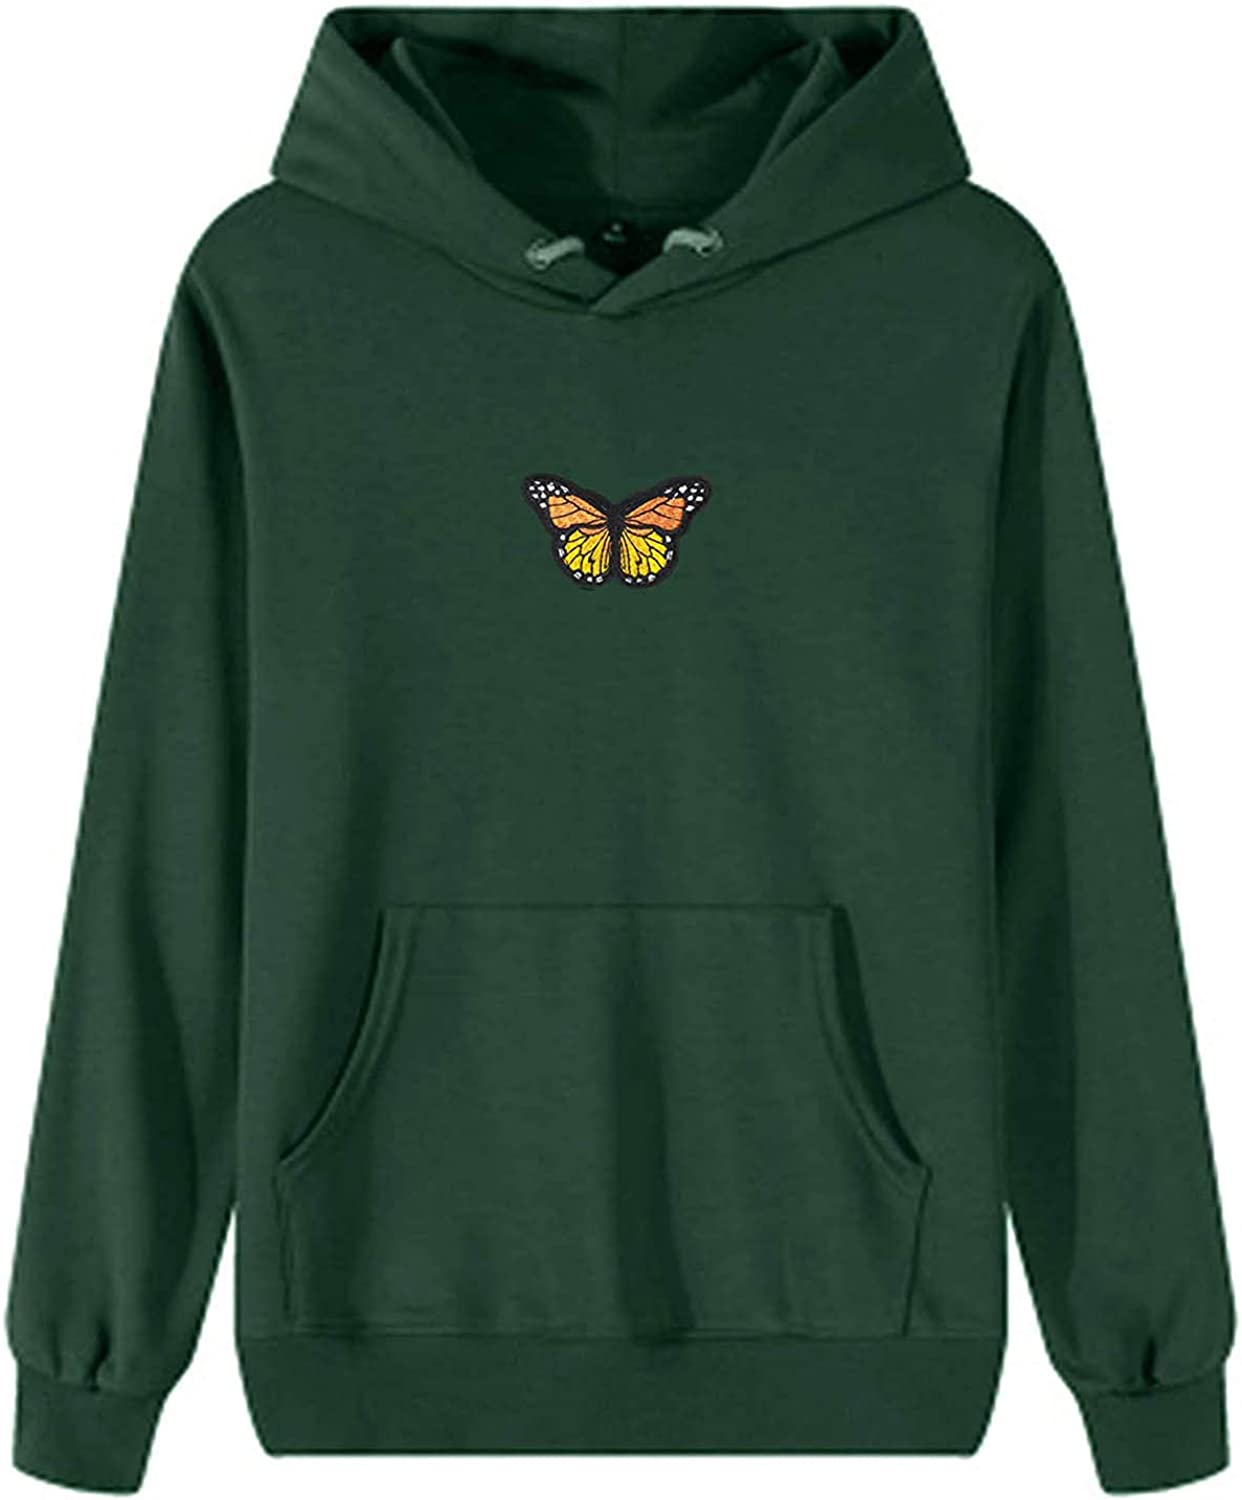 felwors Hoodie for Women, Women's Girls Sweatshirt with Pocket Womens Casual Tunic Cute Cosplay Costume Tops with Zipper